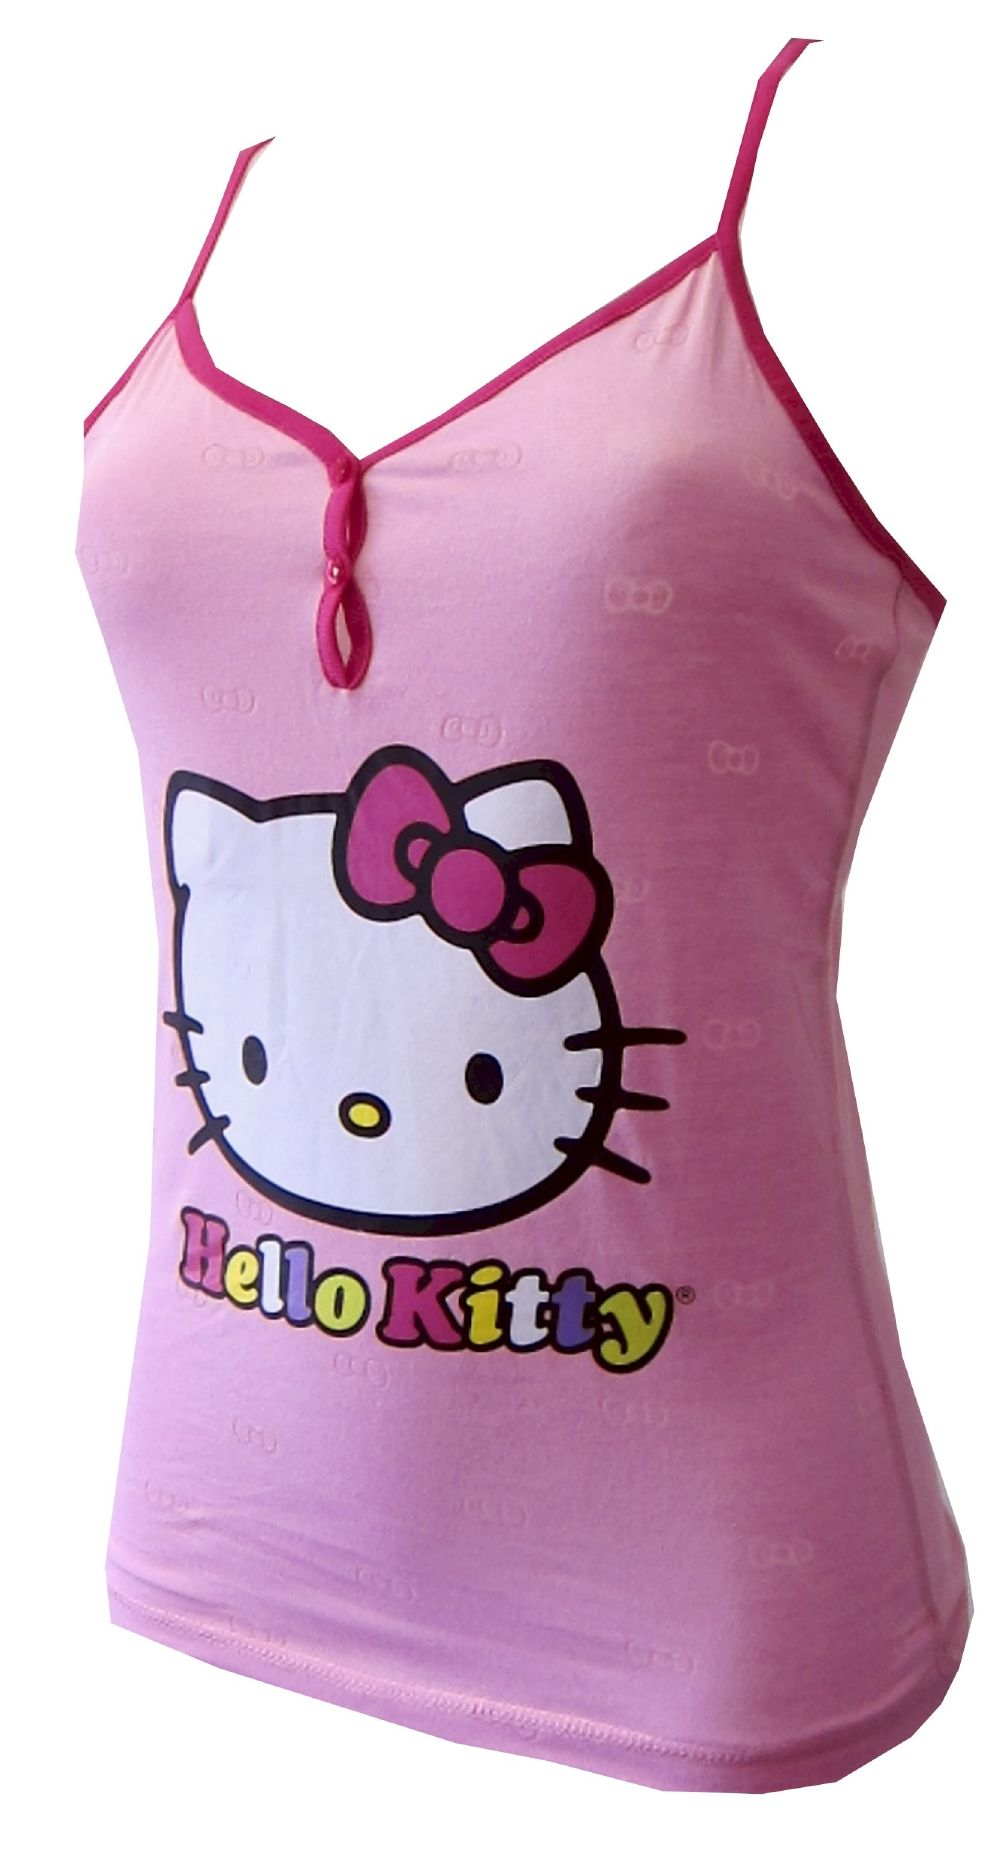 697d0b8d3 Pin by Sarah Stevens on Hello Kitty and Friends. | Hello kitty ...